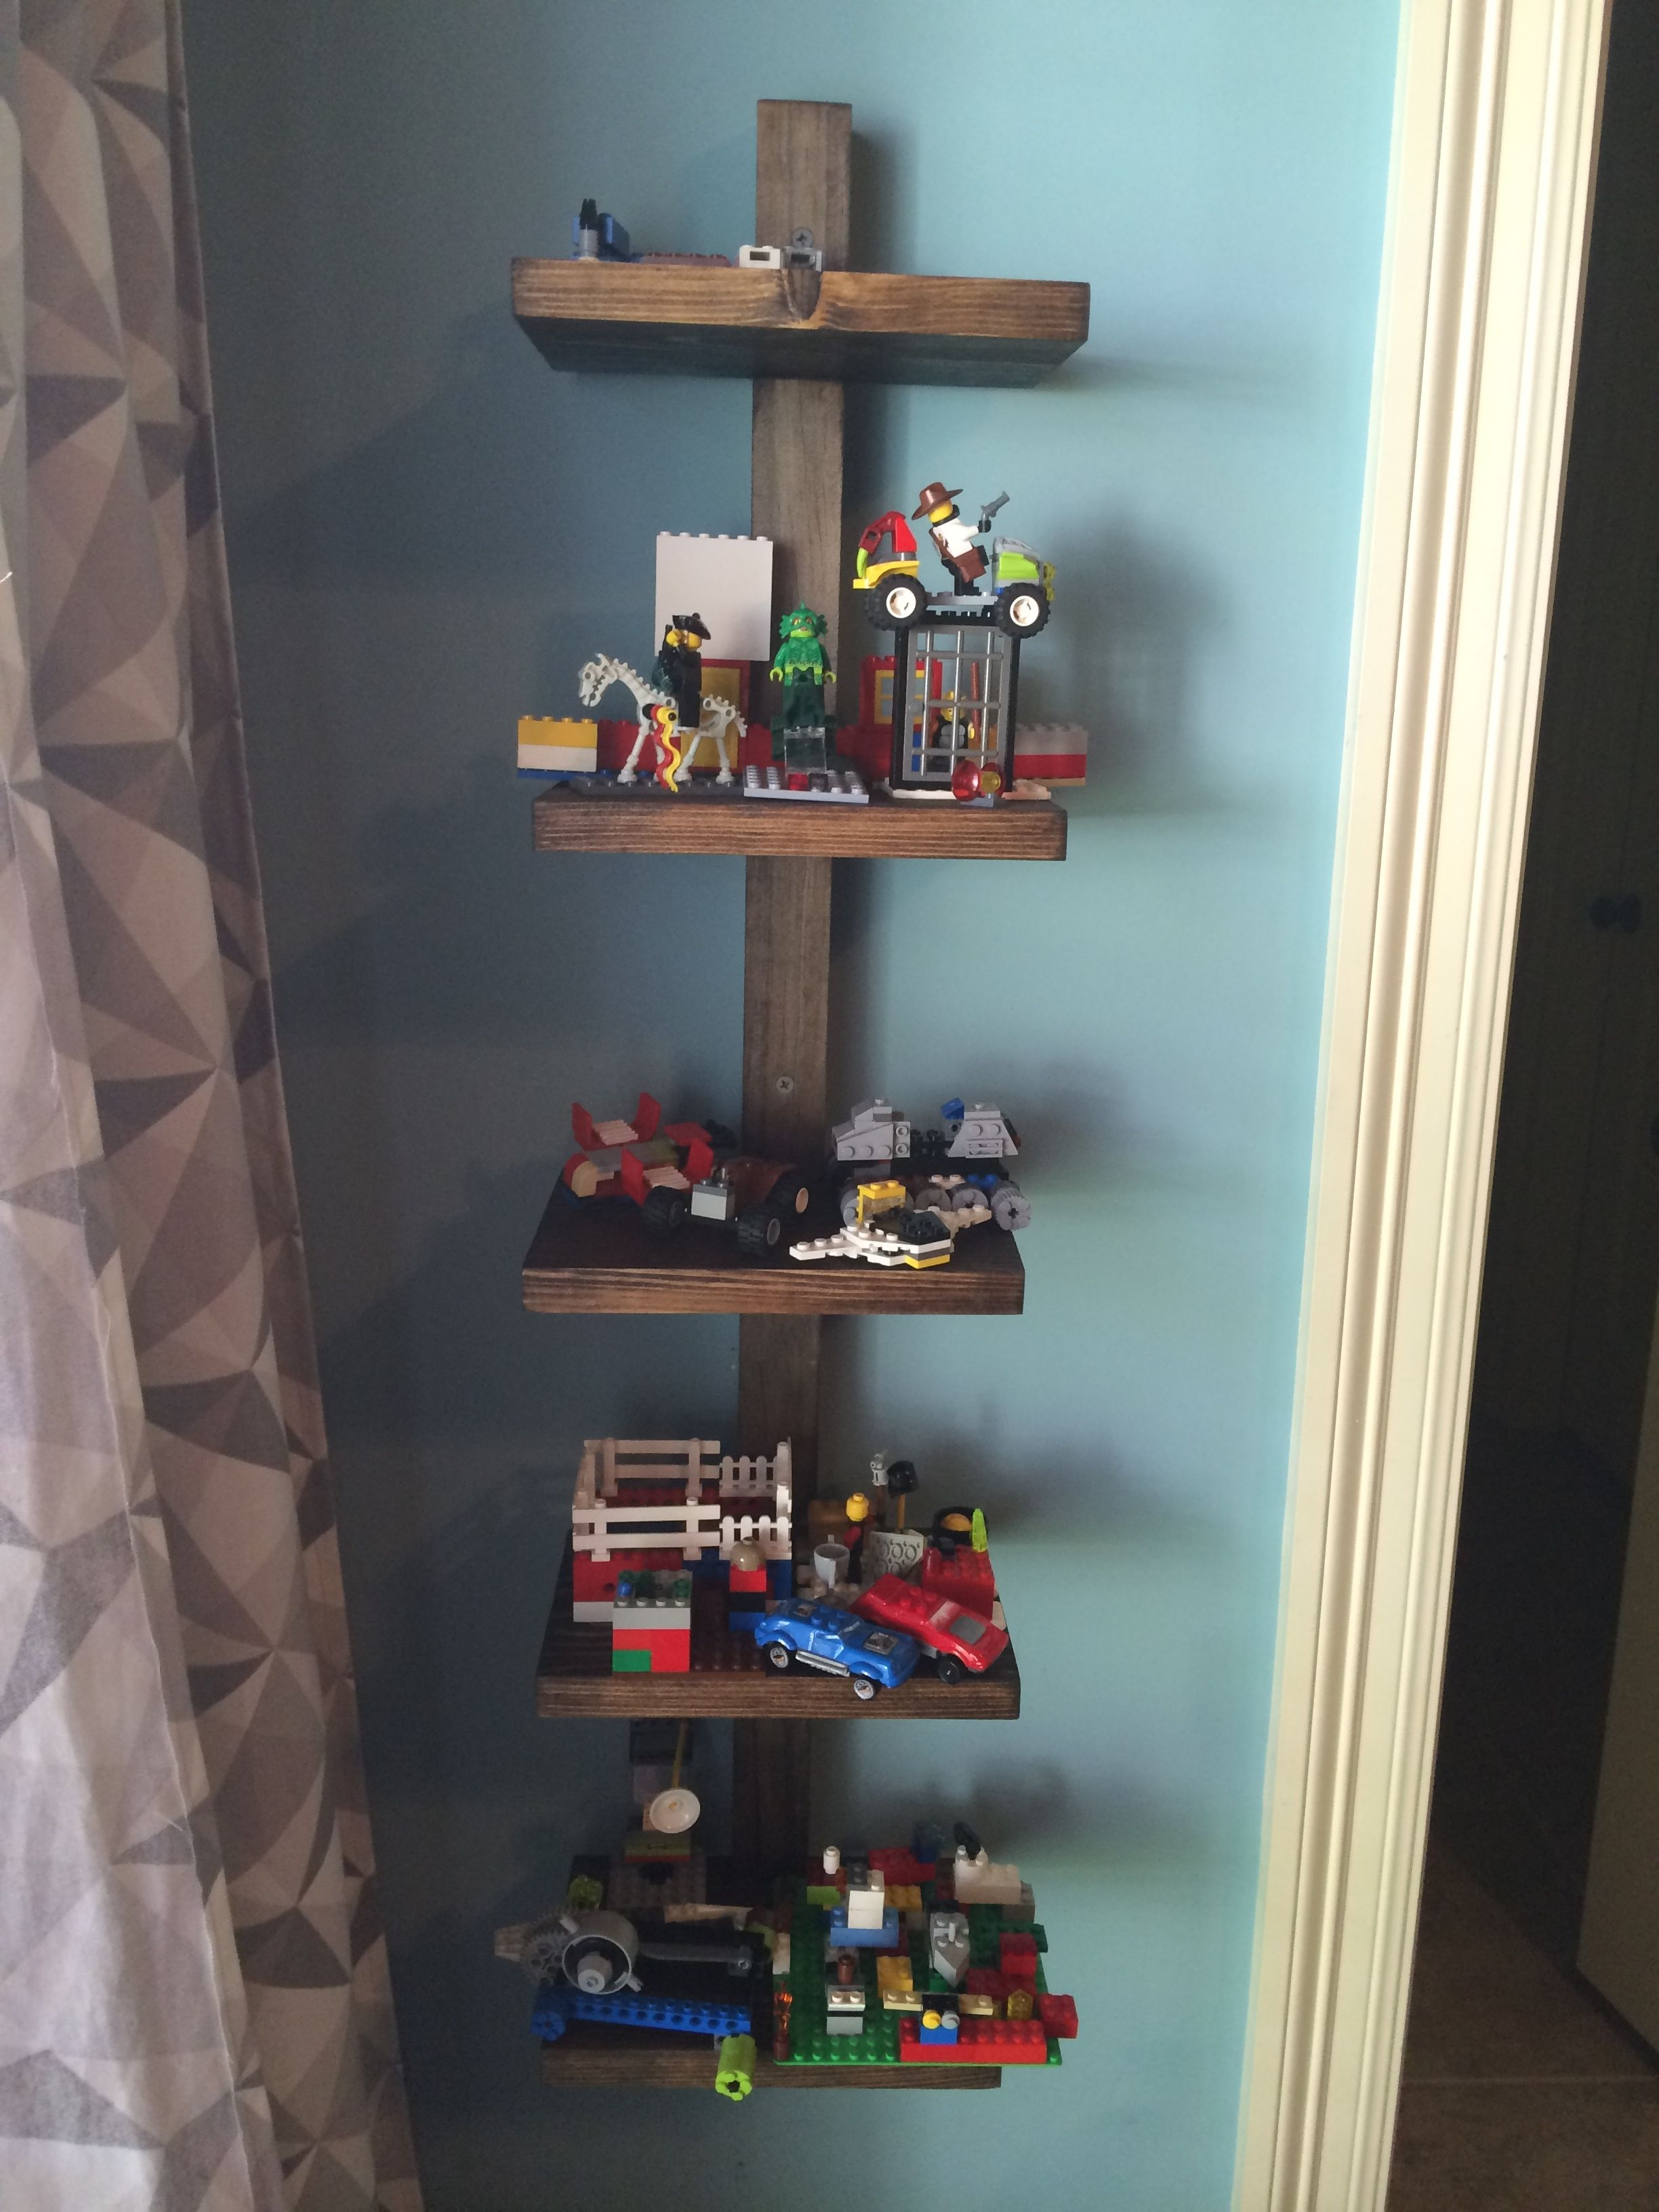 Lego Display Shelf Do It Yourself Home Projects From Ana White Ryker Pinterest Home